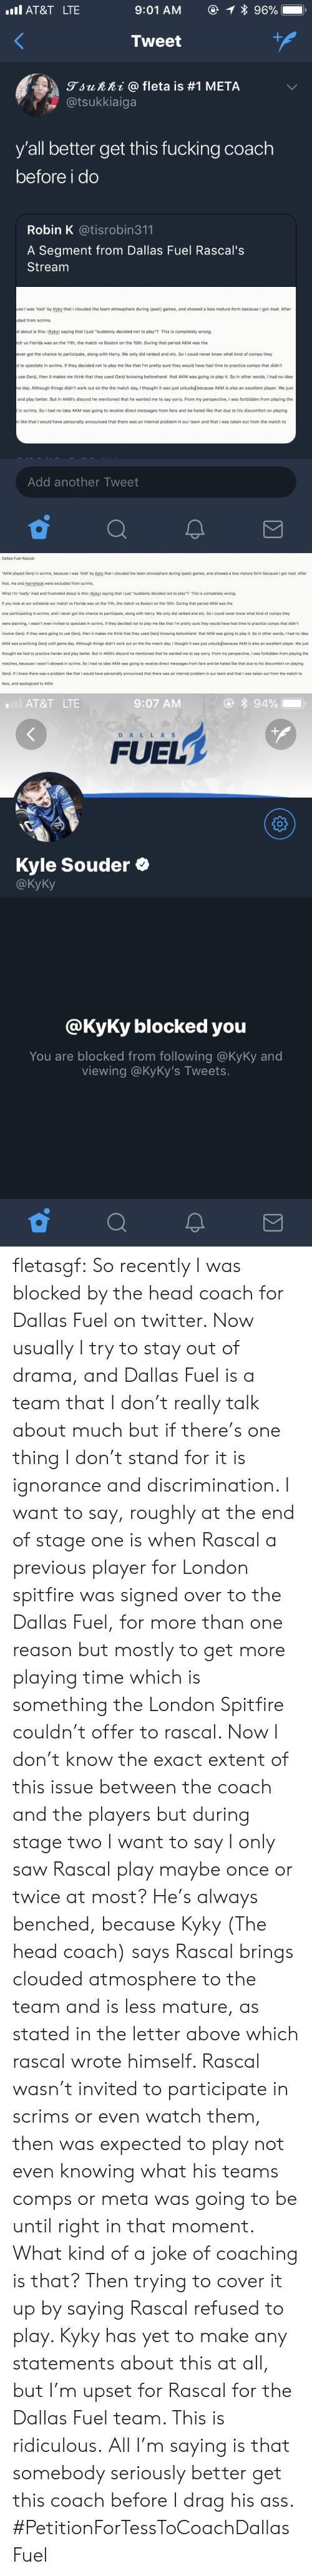 "Coaching: AT&T LTE  Tweet  gjunni @ fleta is #1 META  @tsukkiaiga  y'all better get this fucking coach  before i do  Robin K @tisrobin311  A Segment from Dallas Fuel Rascal's  Stream  se I was 'told by Kyky that I clouded the team atmosphere during (past) games, and showed a less mature form because I got mad. After  ded from scrims.  d about is this: (Kyky) saying that I just ""suddenly decided not to play""? This is completely wrong.  ch vs Florida was on the 11th, the match vs Boston on the 15th. During that period AKM was the  ever got the chance to participate, along with Harry. We only did ranked and etc. So I could never know what kind of comps they  to spectate in scrims. If they decided not to play me like that I'm pretty sure they would have had time to practice comps that didn't  use Genji, then it makes me think that they used Genji knowing beforehand that AKM was going to play it. So in other words, I had no idea  e day. Although things didn't work out on the the match day, I thought it was just unlucky)because AKM is also an excellent player. We just  and play better. But in AKM's discord he mentioned that he wanted me to say sorry. From my perspective, I was forbidden from playing the  in scrims. So I had no idea AKM was going to receive direct messages from fans and be hated like that due to his discomfort on playing  like that I would have personally announced that there was an internal problem in our team and that I was taken out from the match to  Add another Tweet   Dallas Fuel Rascal  ""AKM played Genj in scrims, because I was 'told' by Kyky that I clouded the team atmosphere during (past) games, and showed a less mature form because I got mad. After  that, me and Harryhook were excluded from scrims.  What I'm 'really mad and frustrated about is this: (Kyky) saying that I just ""suddenly decided not to play""? This is completely wrong  If you look at our schedule our match vs Florida was on the 11th, the match vs Boston on the 15th. During that period AKM was the  one participating in scrims, and I never got the chance to participate, along with Harry. We only did ranked and etc. So I could never know what kind of comps they  were planning. I wasn't even invited to spectate in scrims. If they decided not to play me like that I'm pretty sure they would have had time to practice comps that didn't  involve Genji. If they were going to use Genji, then it makes me think that they used Genji knowing beforehand that AKM was going to play it. So in other words, I had no idea  AKM was practicing Genji until game day. Although things didn't work out on the the match day, I thought it was just unlucky because AKM is also an excellent player. We just  thought we had to practice harder and play better. But in AKM's discord he mentioned that he wanted me to say sorry. From my perspective, I was forbidden from playing the  matches, because I wasn't allowed in scrims. So I had no idea AKM was going to receive direct messages from fans and be hated like that due to his discomfort on playing  Genji. If I knew there was a problem like that I would have personally announced that there was an internal problem in our team and that I was taken out from the match to  fans, and apologized to AKM.   AT&T LTE  9:07 AM  FUEL  DAL L AS  Kyle Souder Ф  @KyKy  @KyKy blocked you  You are blocked from following @KyKy and  viewing @KyKy's Tweets fletasgf:  So recently I was blocked by the head coach for Dallas Fuel on twitter.  Now usually I try to stay out of drama, and Dallas Fuel is a team that I don't really talk about much but if there's one thing I don't stand for it is ignorance and discrimination. I want to say, roughly at the end of stage one is when Rascal a previous player for London spitfire was signed over to the Dallas Fuel, for more than one reason but mostly to get more playing time which is something the London Spitfire couldn't offer to rascal.   Now I don't know the exact extent of this issue between the coach and the players but during stage two I want to say I only saw Rascal play maybe once or twice at most? He's always benched, because Kyky (The head coach) says Rascal brings clouded atmosphere to the team and is less mature, as stated in the letter above which rascal wrote himself. Rascal wasn't invited to participate in scrims or even watch them, then was expected to play not even knowing what his teams comps or meta was going to be until right in that moment.  What kind of a joke of coaching is that? Then trying to cover it up by saying Rascal refused to play. Kyky has yet to make any statements about this at all, but I'm upset for Rascal for the Dallas Fuel team. This is ridiculous.  All I'm saying is that somebody seriously better get this coach before I drag his ass. #PetitionForTessToCoachDallasFuel"